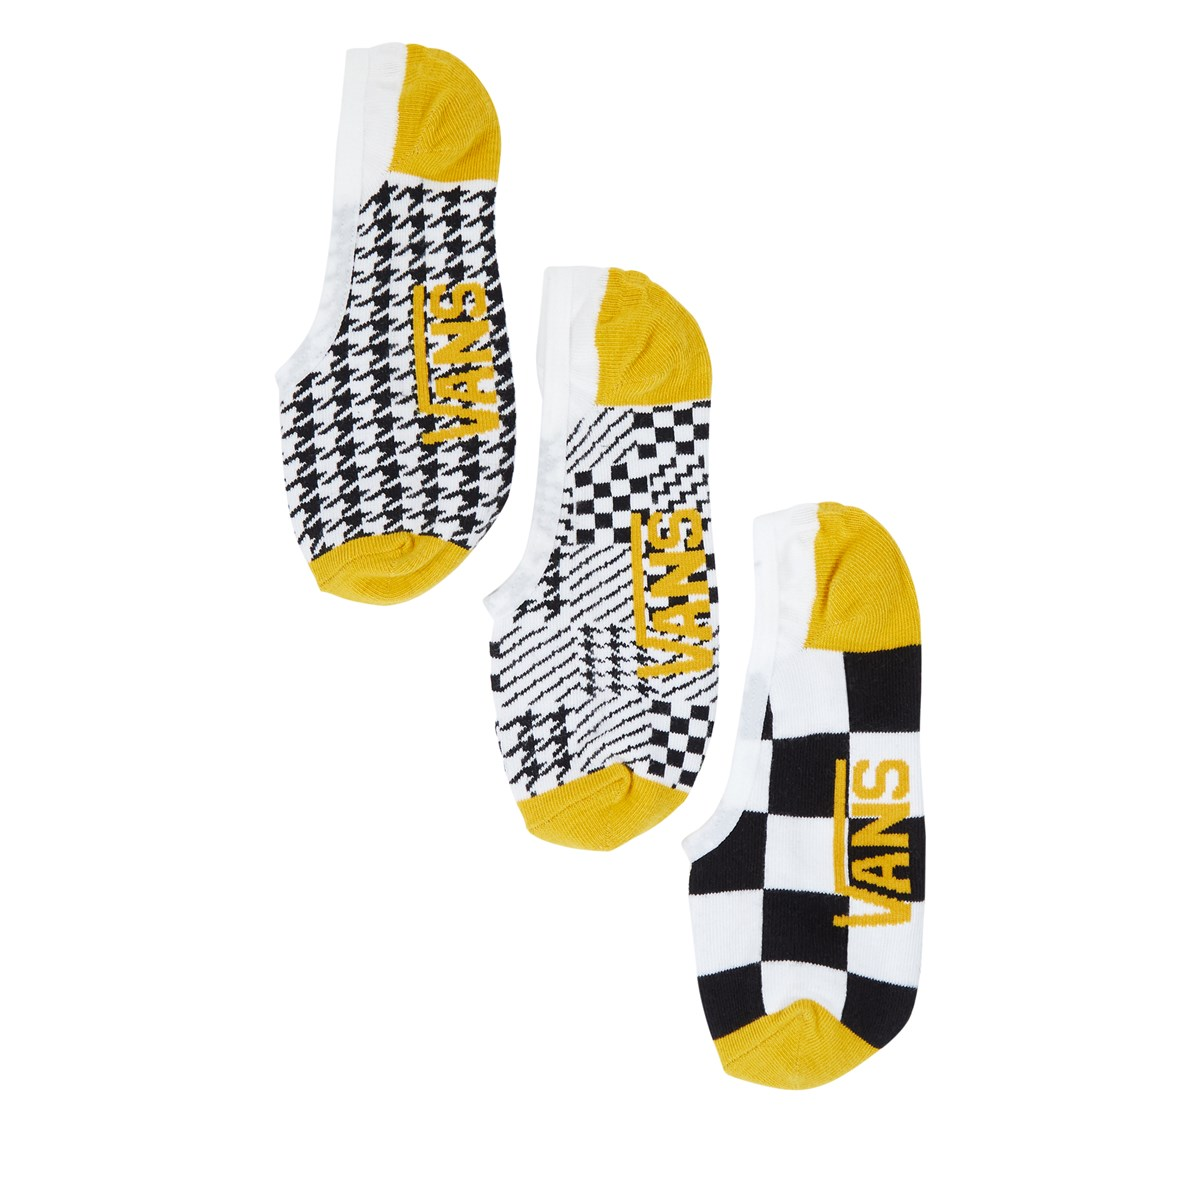 Women's 3 Pair Pack Houndstooth Check Canoodles Socks